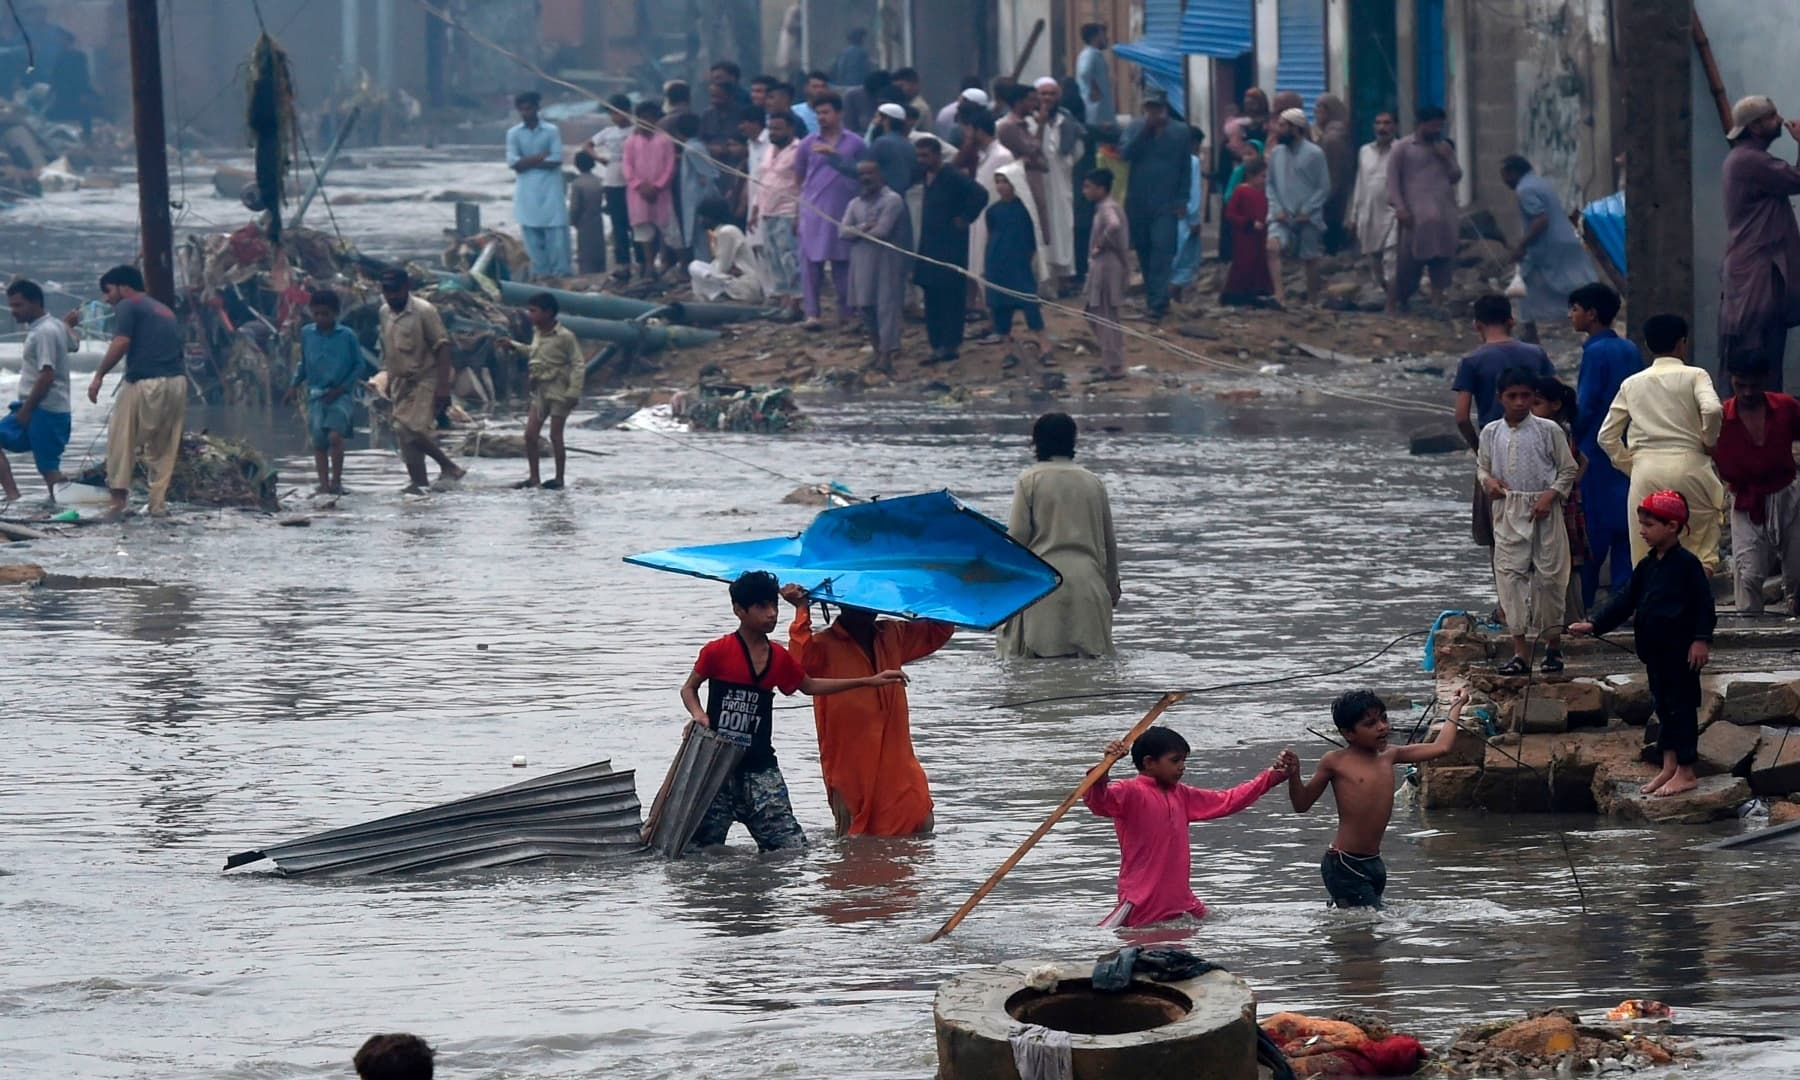 People wade through a flooded residential area after heavy monsoon rains in Karachi on August 27, 2020. — AFP